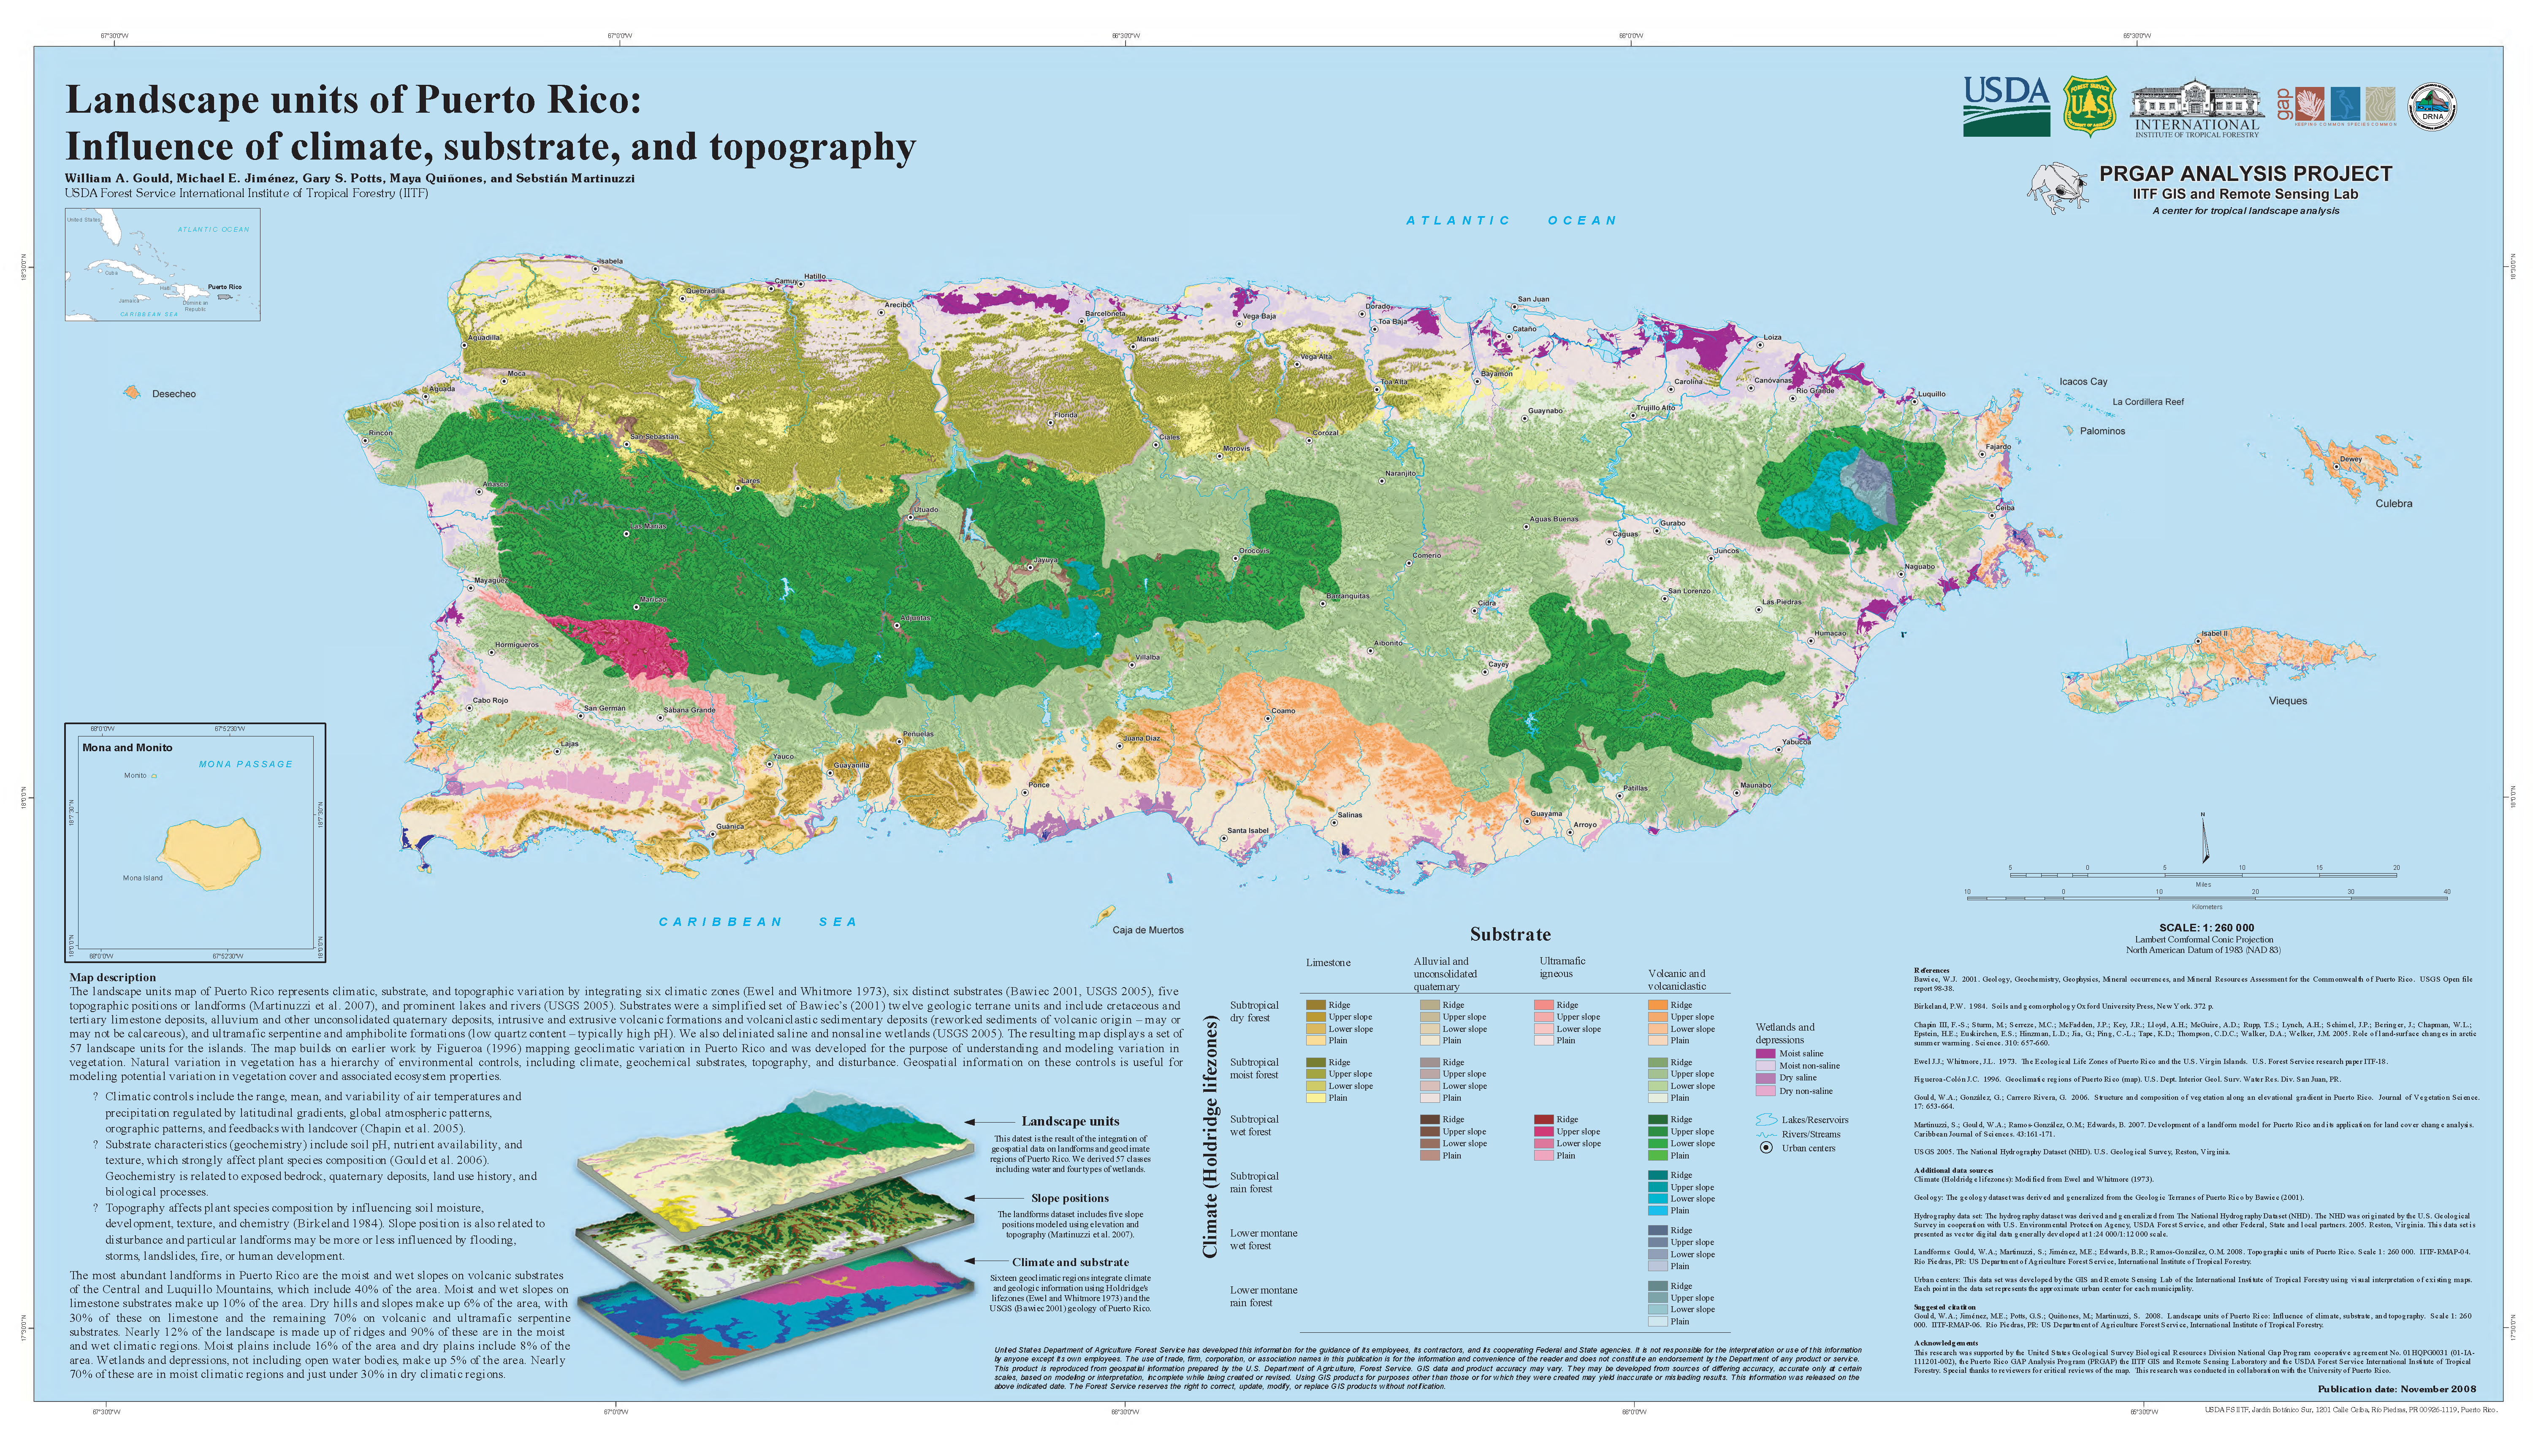 an analysis of puerto rico Iii executive summary the city of san juan, puerto rico is a densely populated, culturally diverse area with many districts in varying degrees of development.